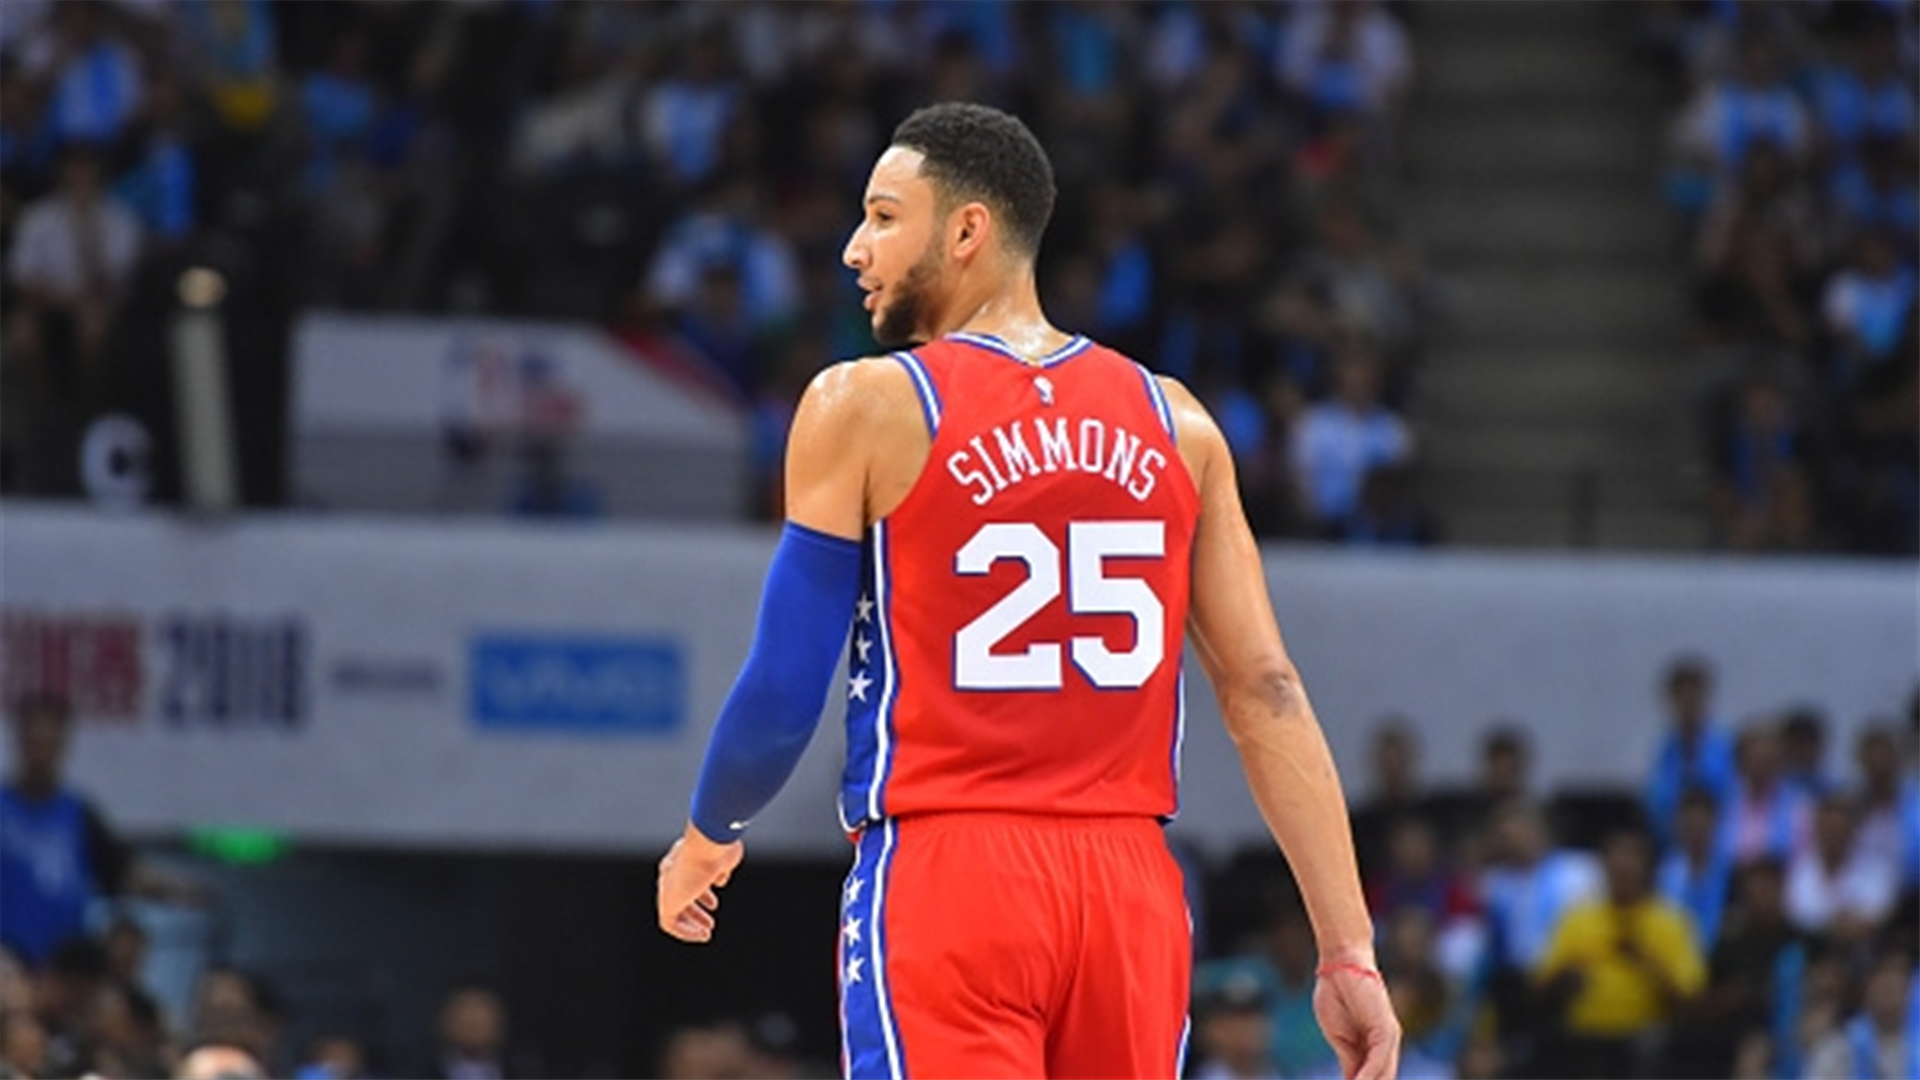 ae357a31428 Key takeaways from preseason  Ben Simmons and 76ers